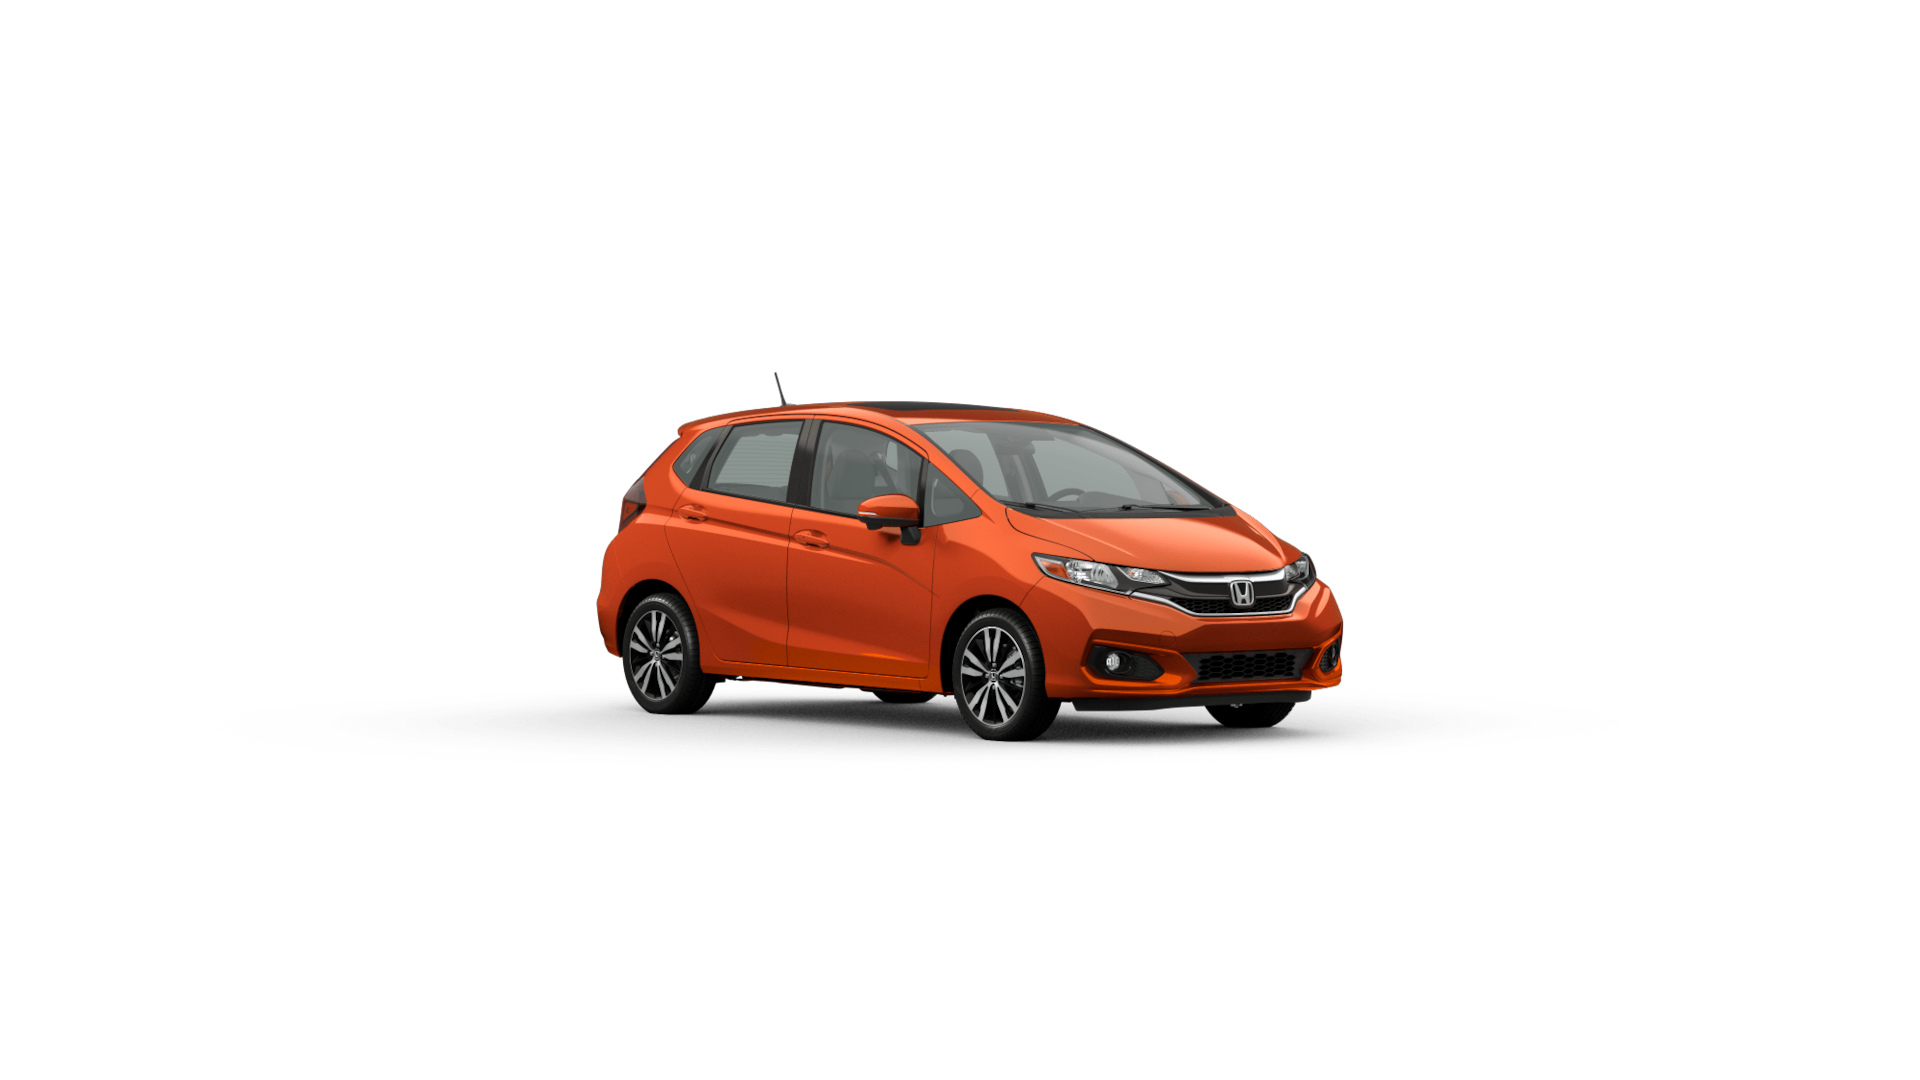 2020 Honda Fit The Sporty 5 Door Car Honda